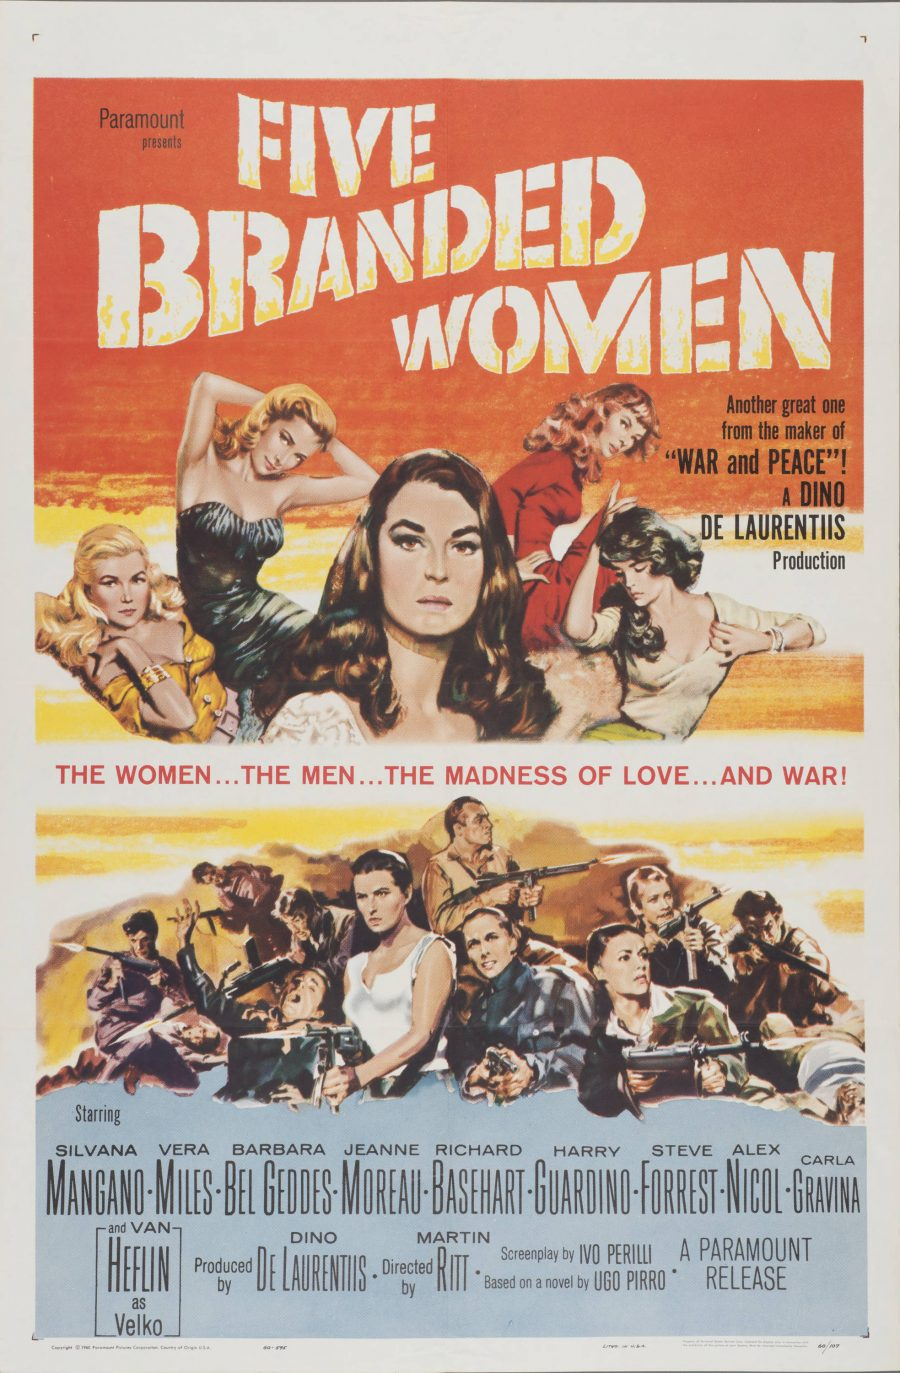 10,000 Classic Movie Posters Getting Digitized & Put Online by the Harry Ransom Center at UT-Austin: Free to Browse & Download Artes & contextos Five Branded Women e1516348110742